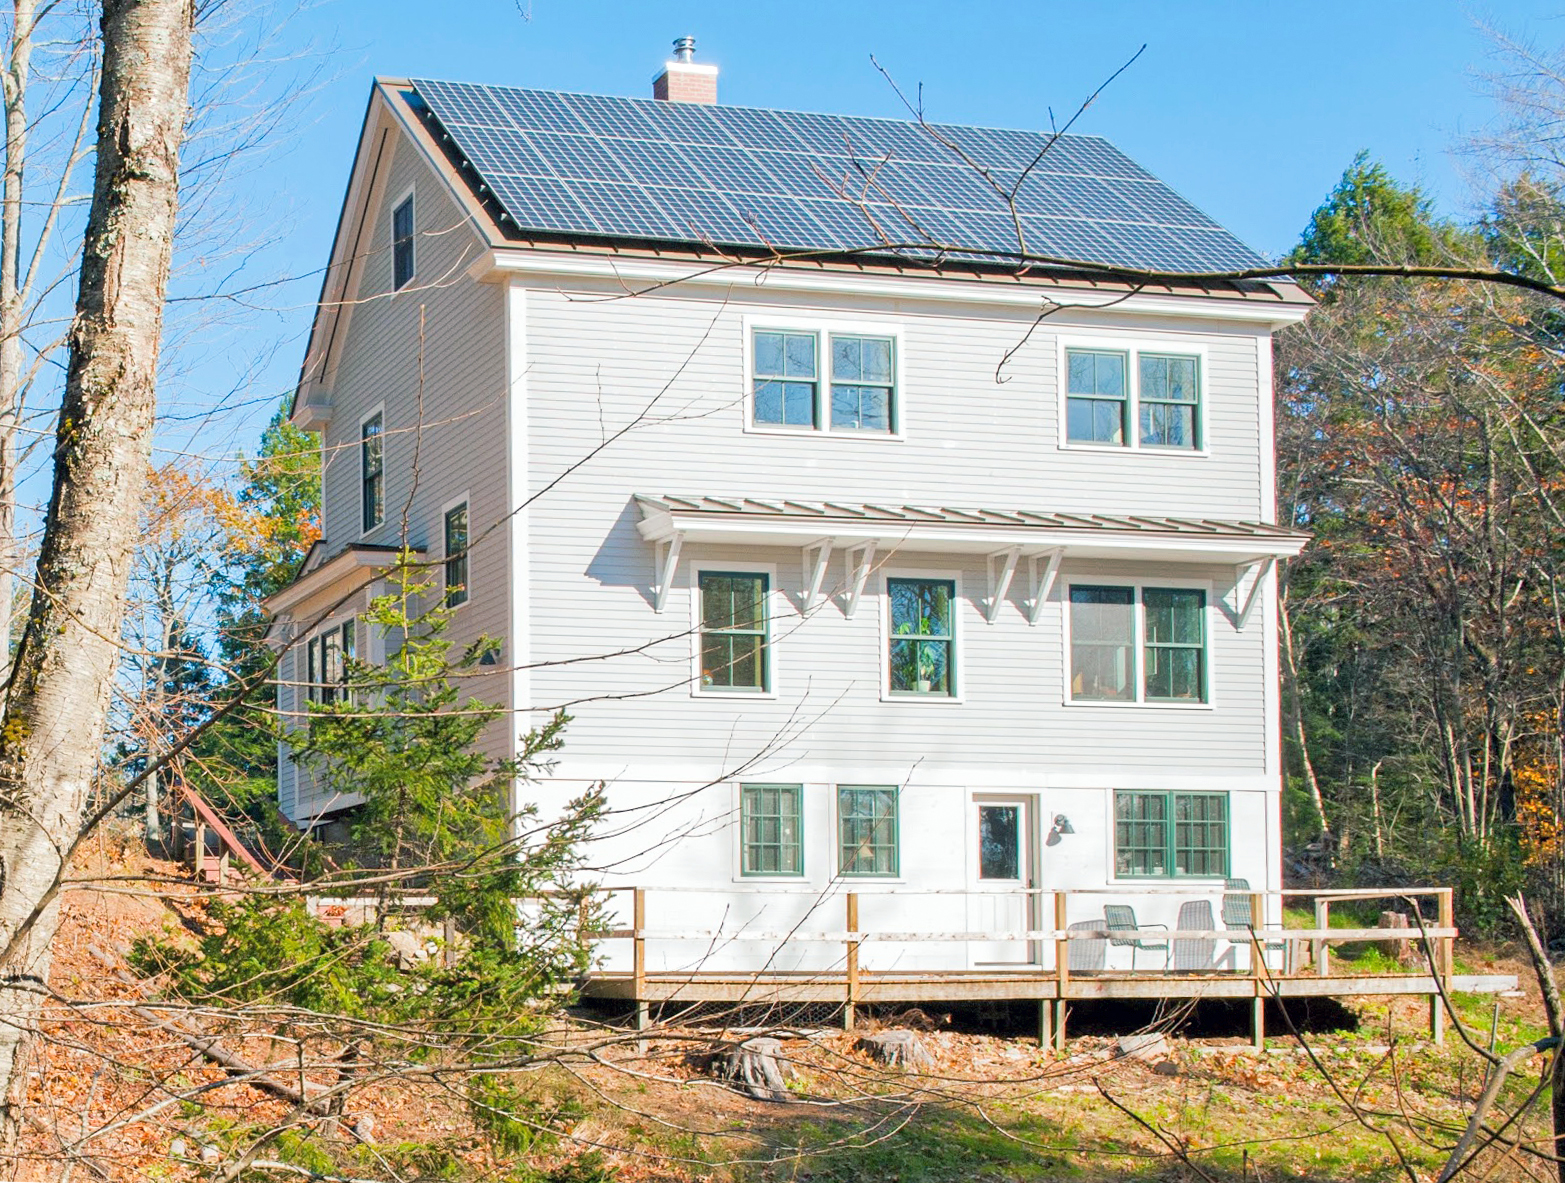 Emerald builders create net zero homes for one and all for Net zero home